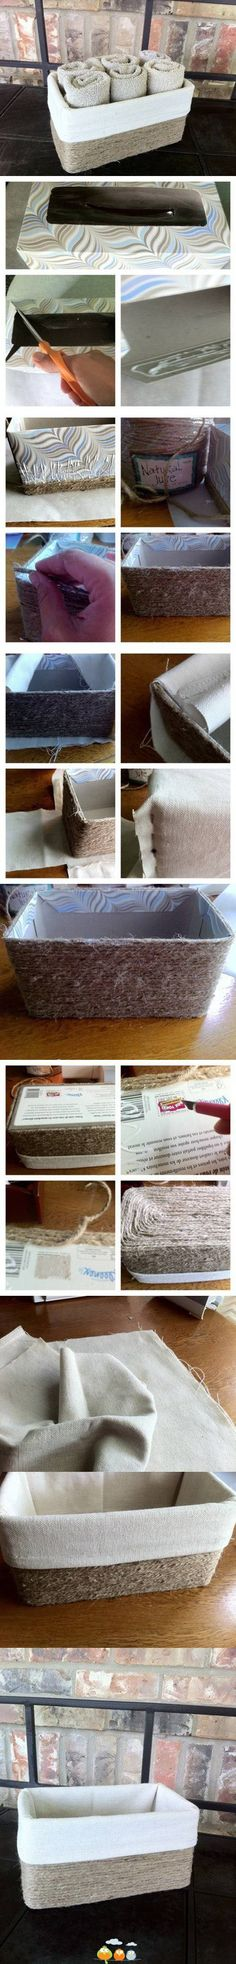 how to pimp a tissue or a shoe box.